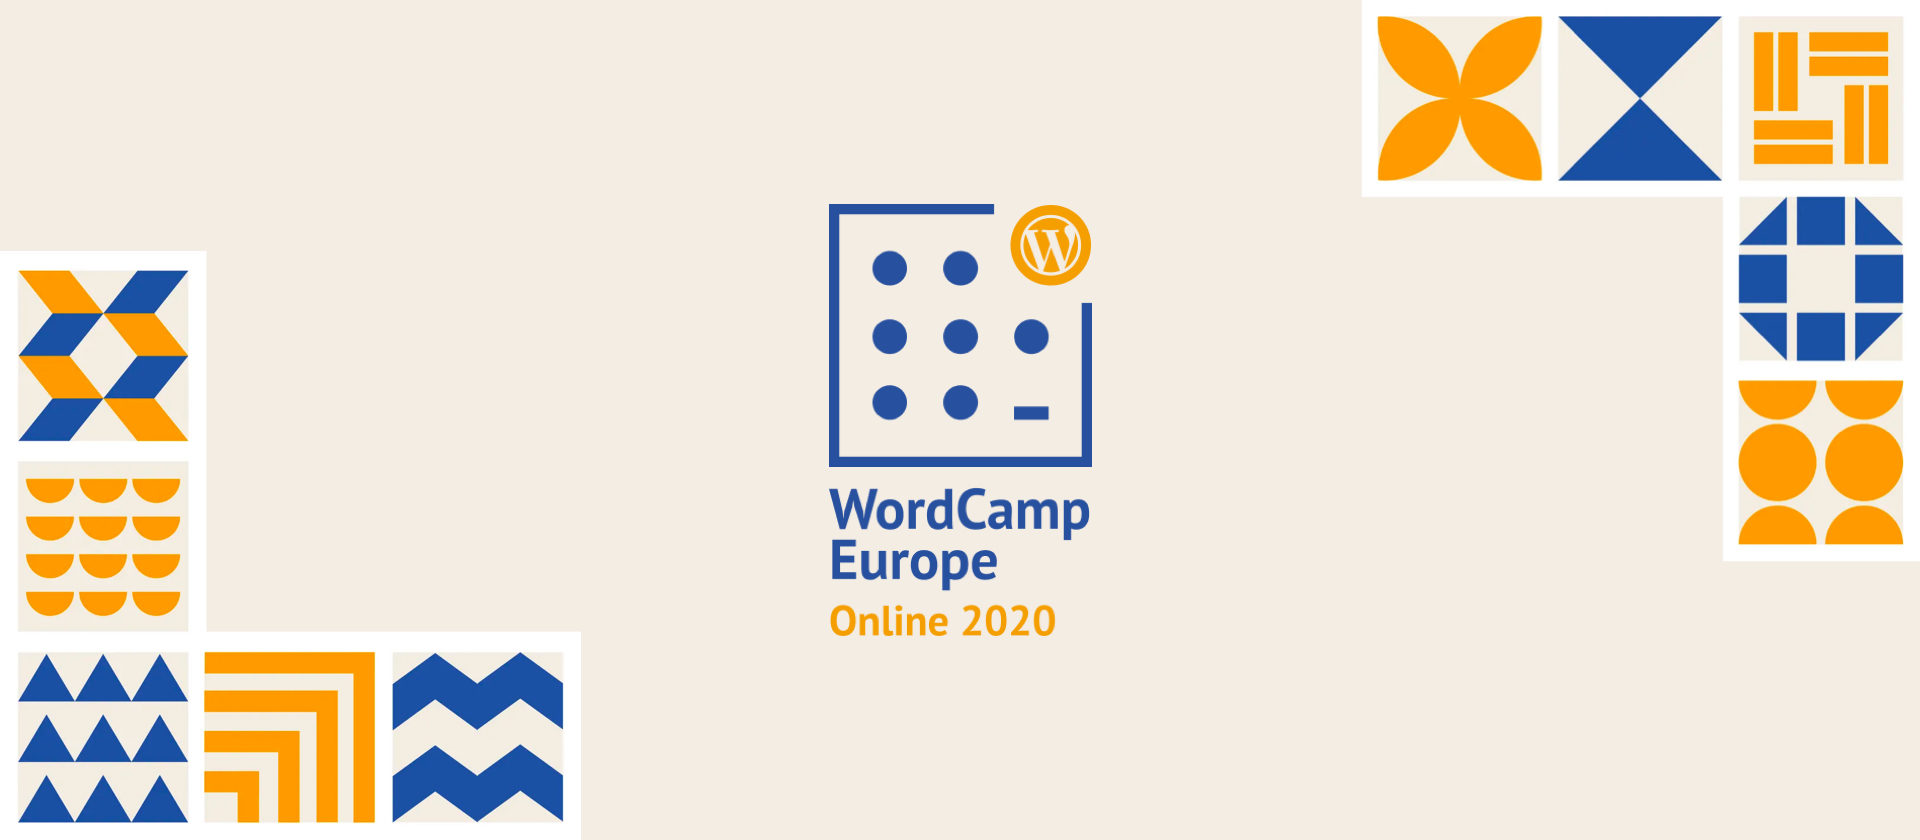 WordCamp Europe Online 2020 Header mit WCEU-Logo